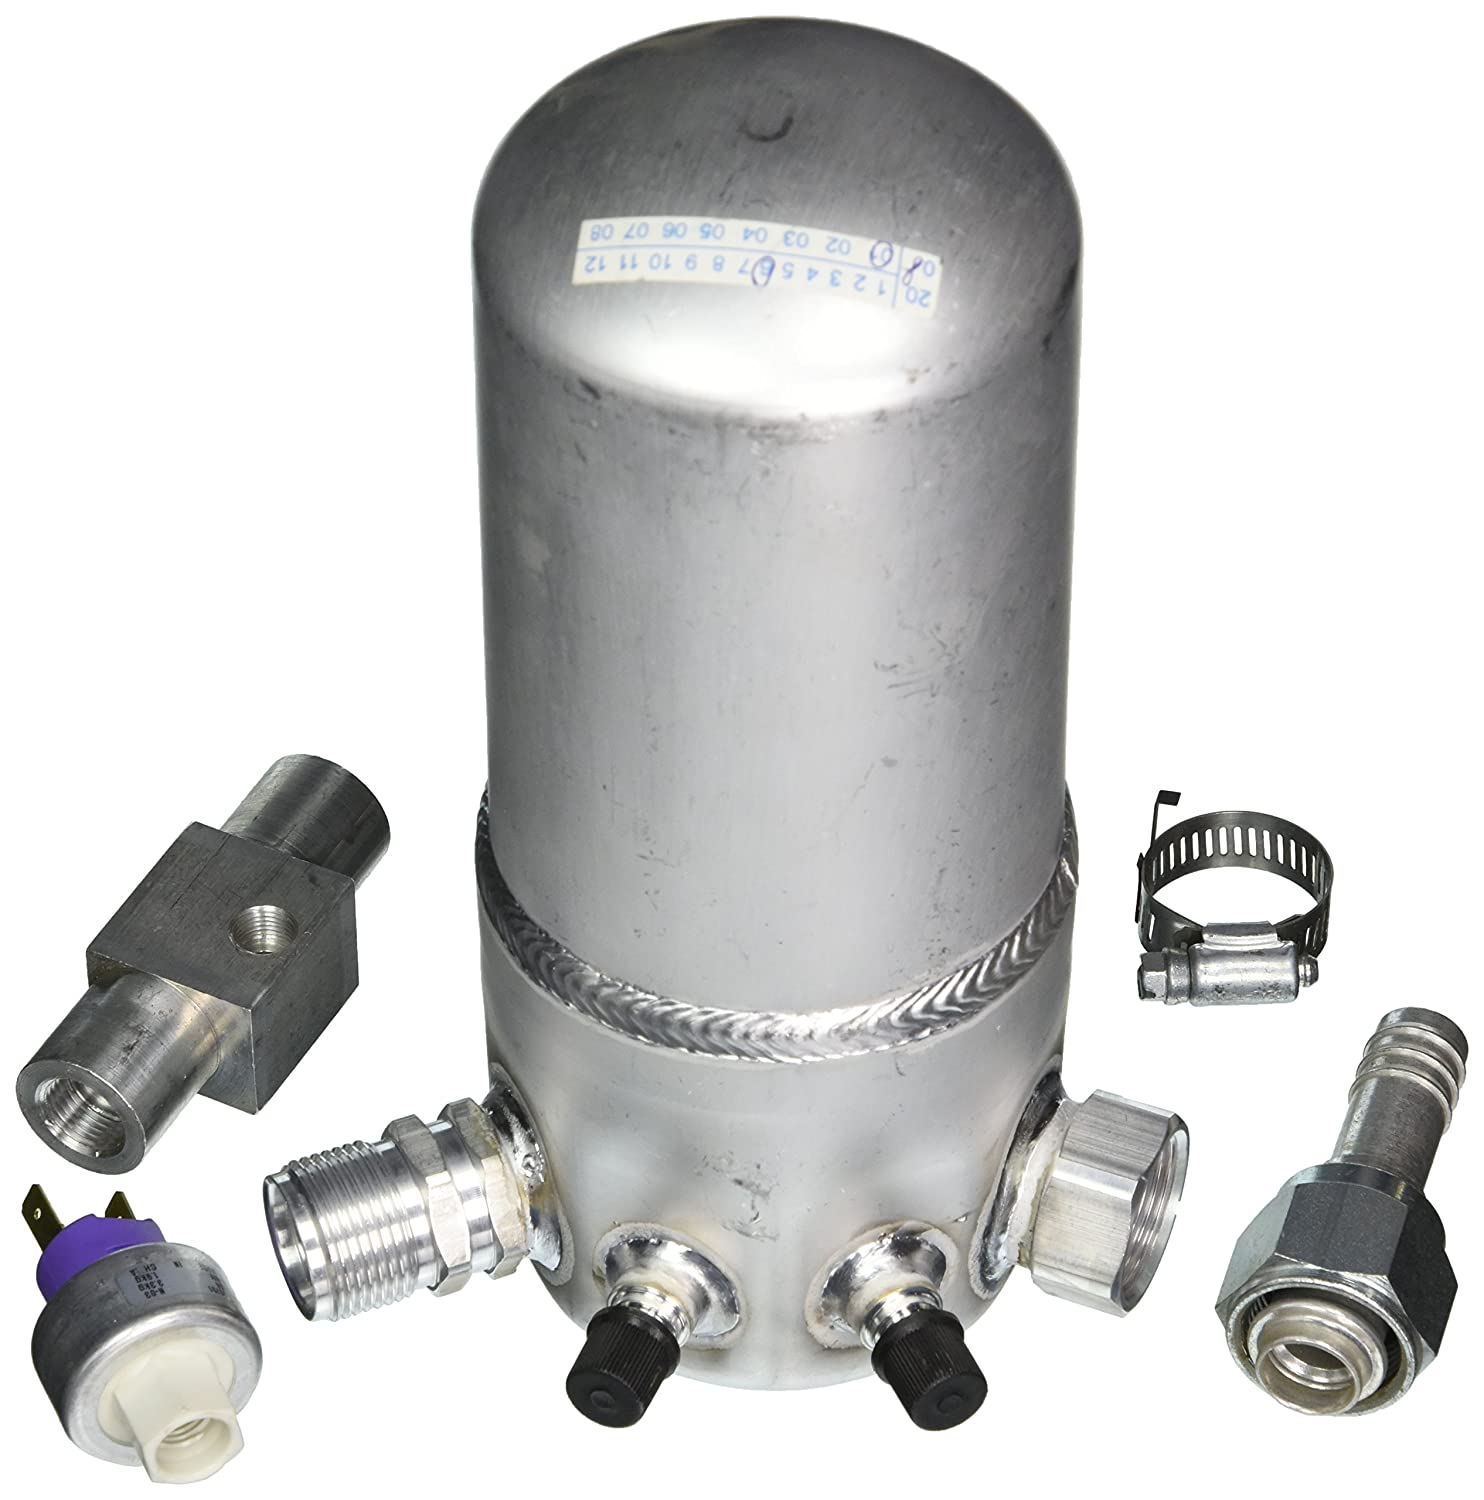 Transmission Cooler Includes Transmission Oil Cooler, Pipe, Hose, Clip, and Bolts GM # 19244188 Hitch Trailering Package Auxiliary